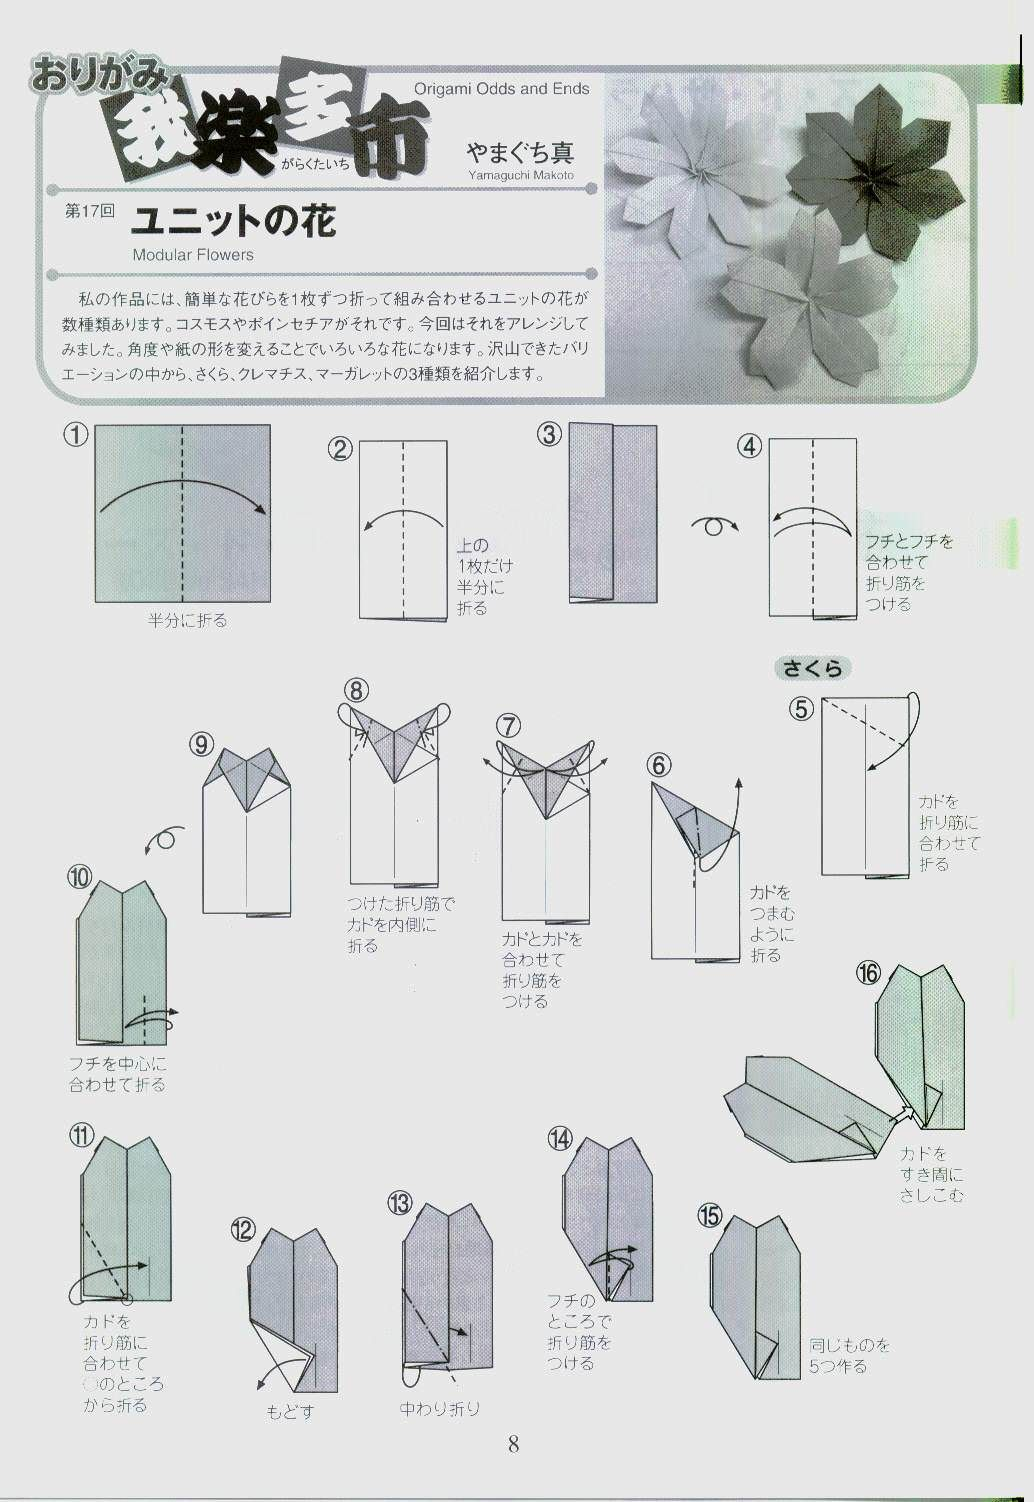 How to make a DIY origami cherry blossom tree with willow ... - photo#39